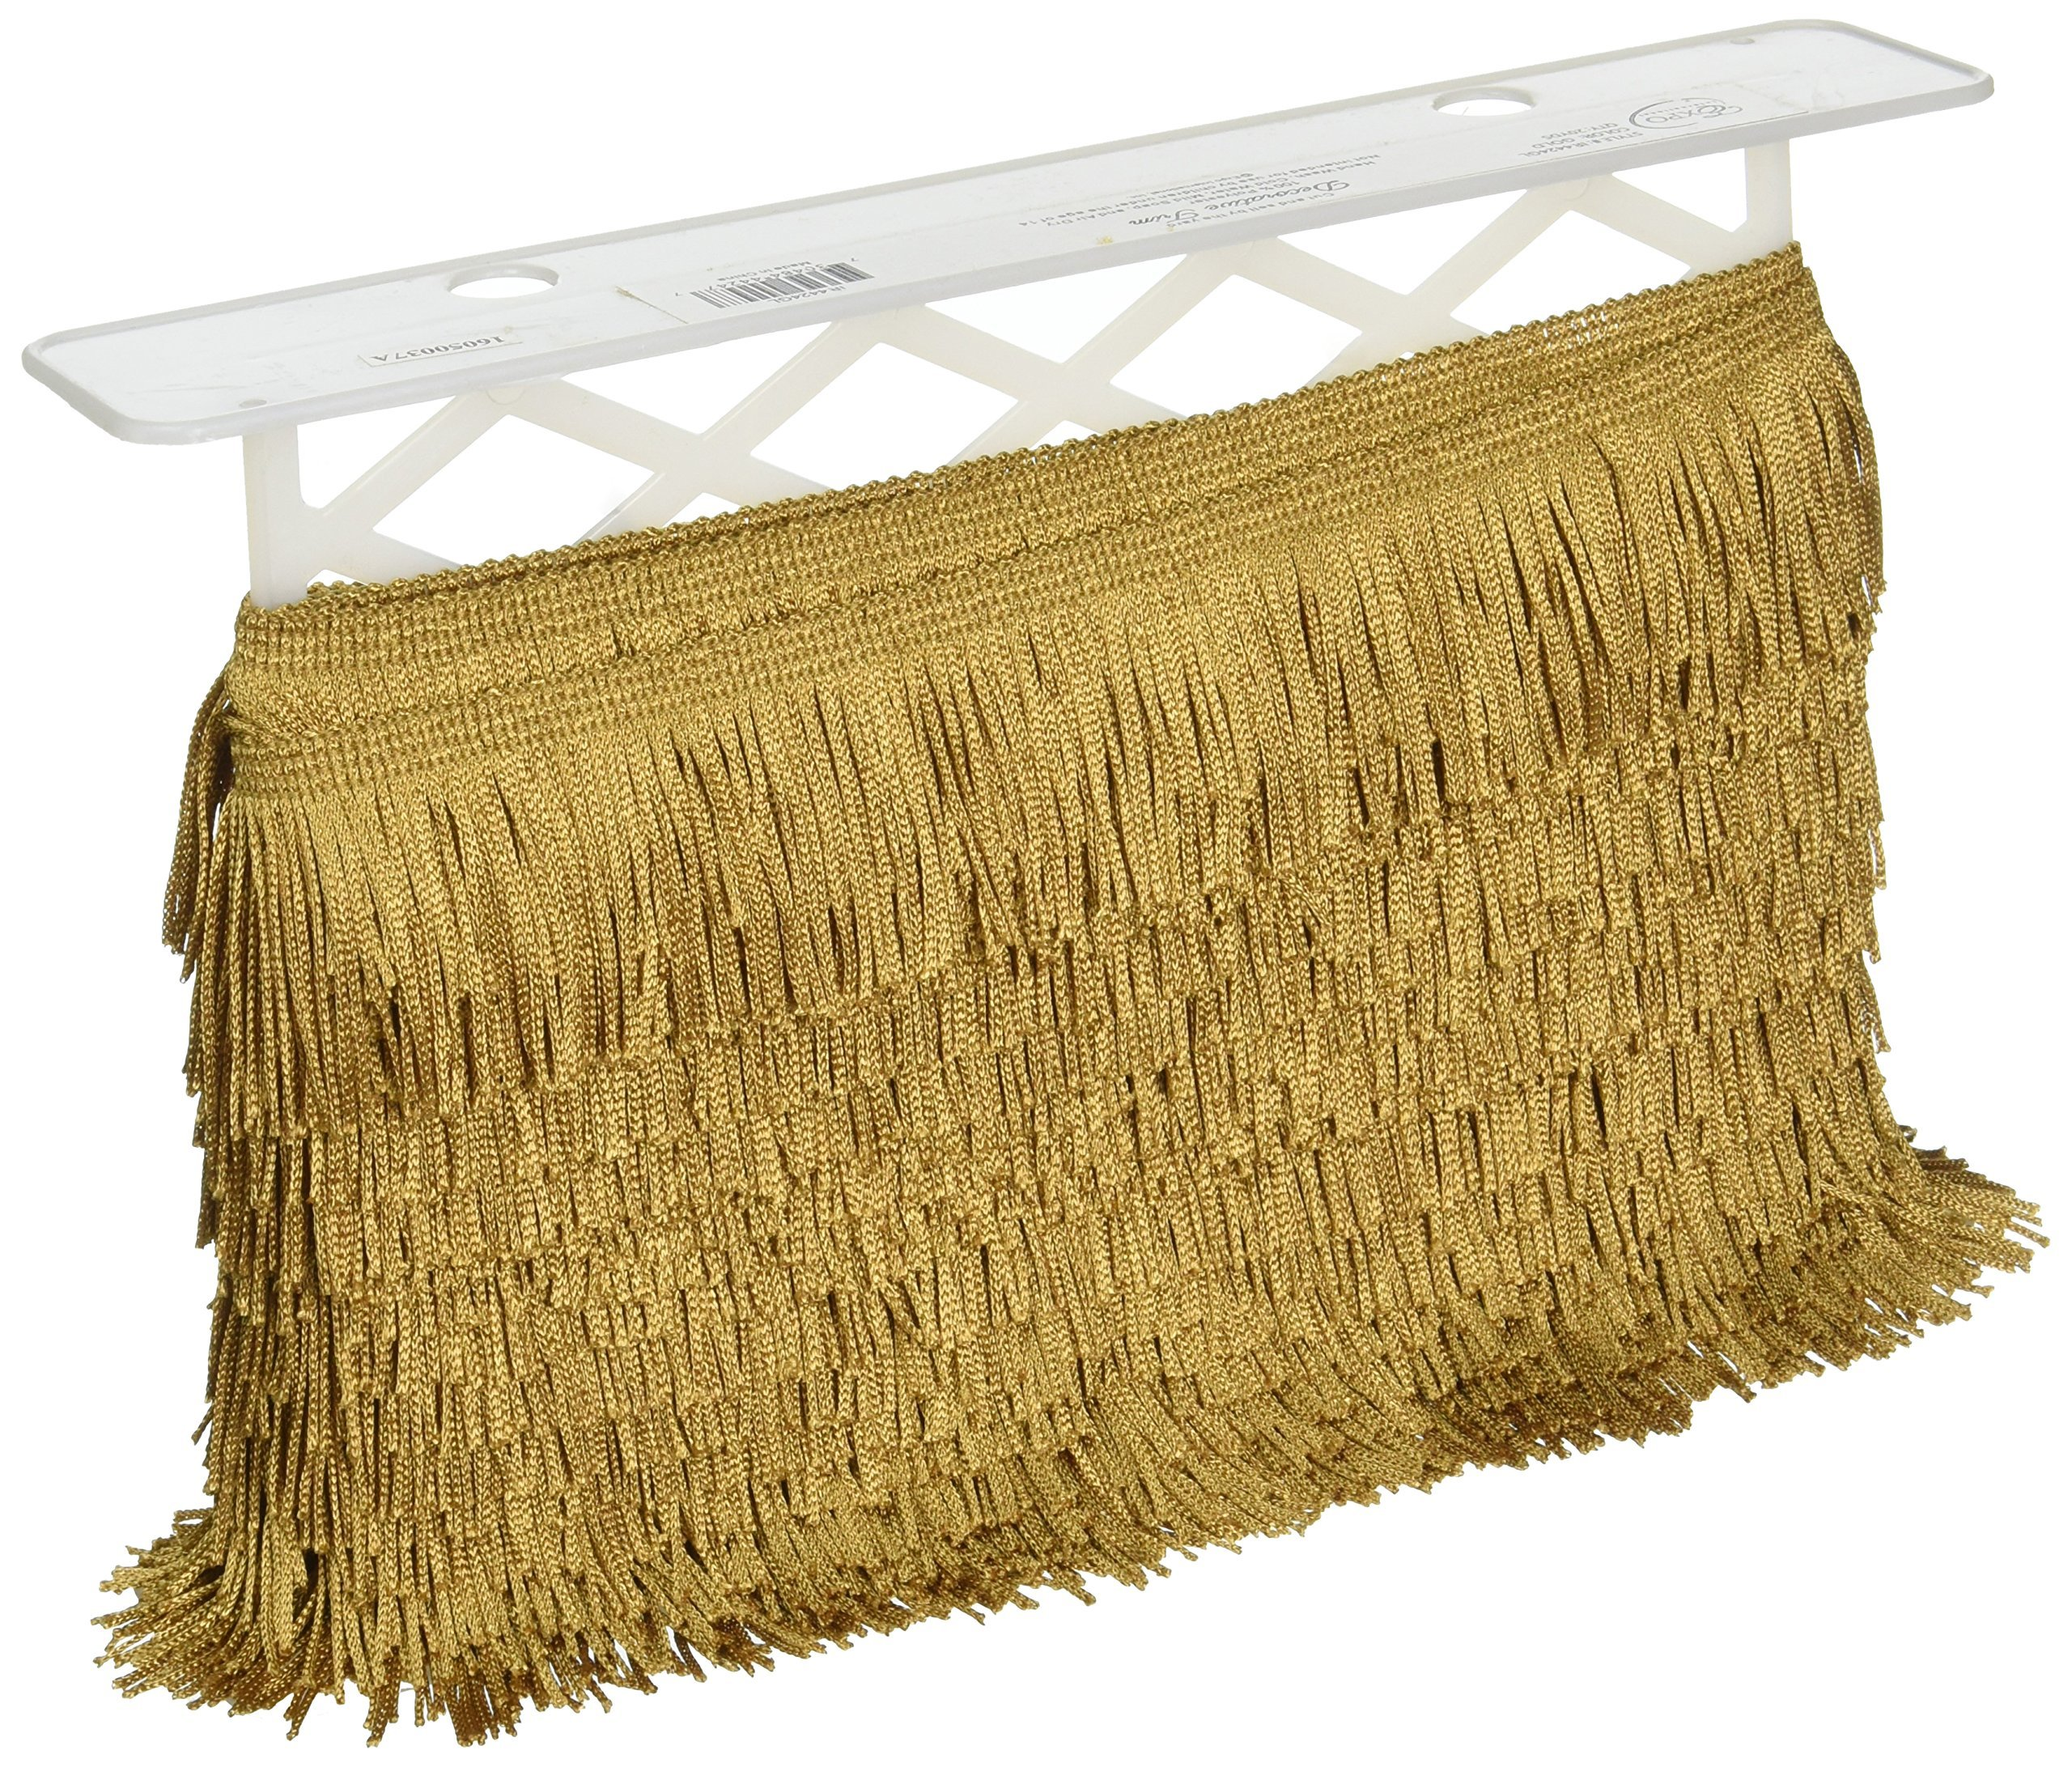 Expo Chainette Fringe 2'' Wide 20 Yards-Gold by Expo